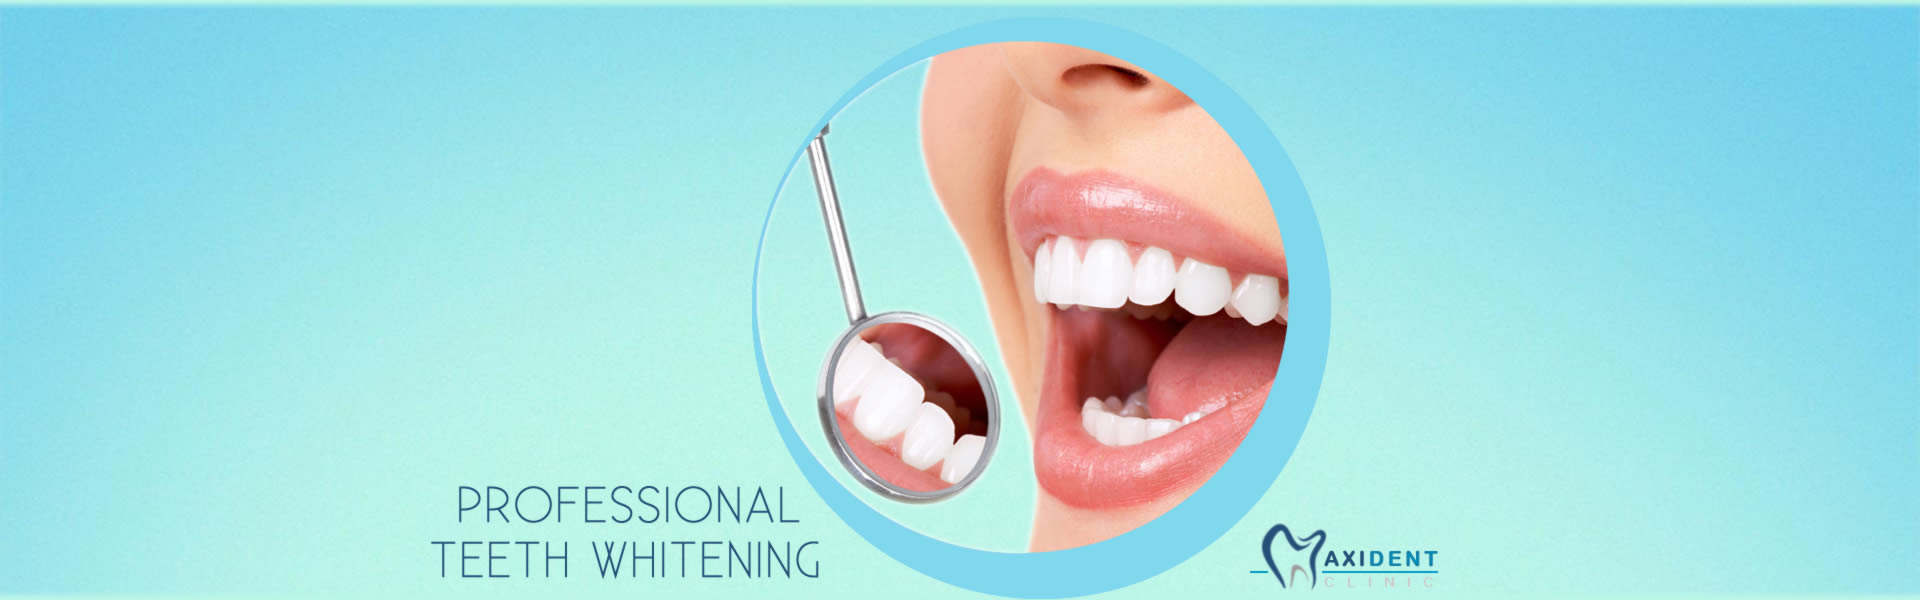 Professional Teeth Whitening At Maxident Clinic